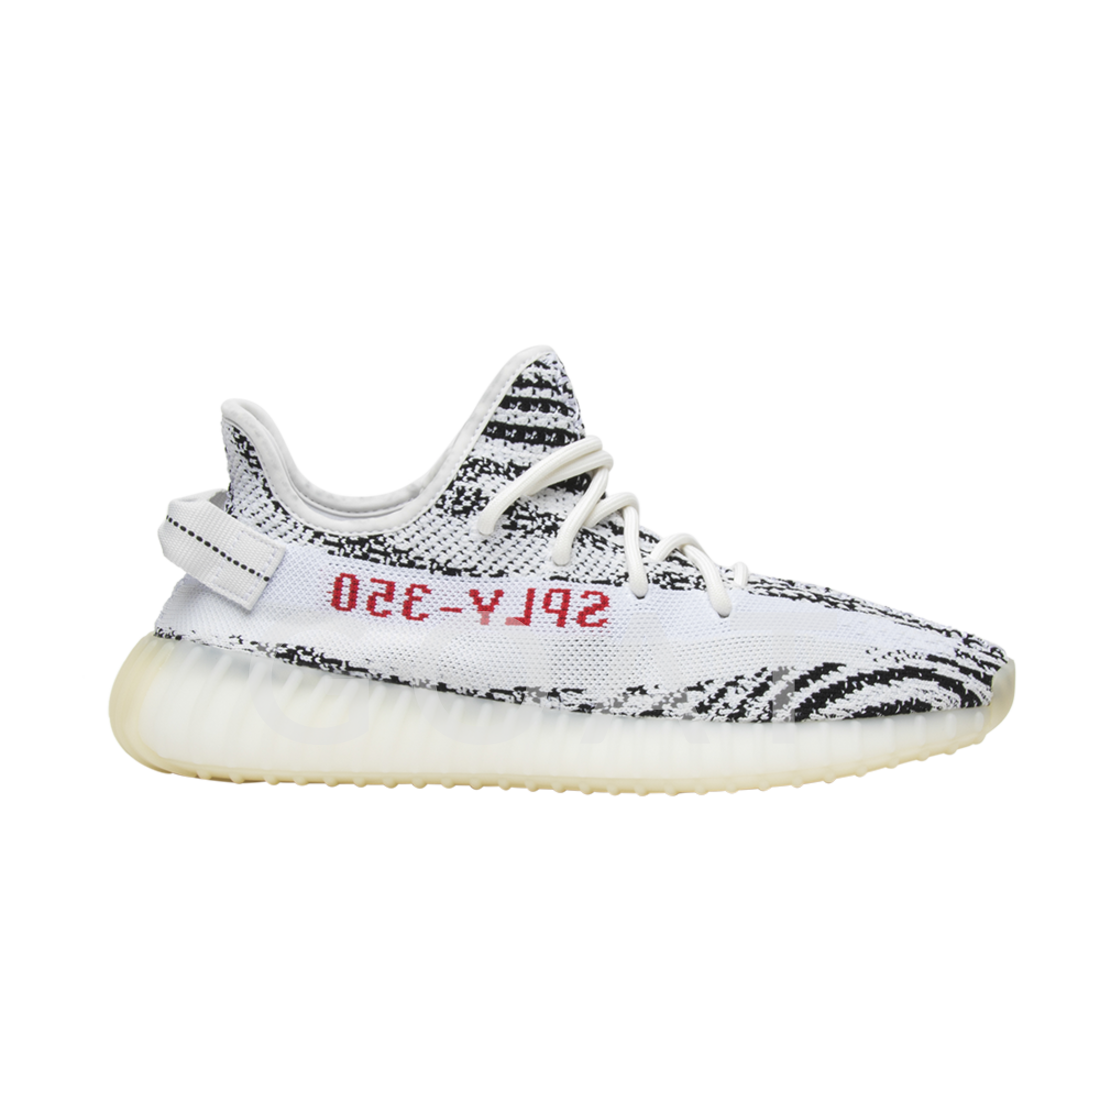 8112fde23493c Yeezy Boost 350 V2  Zebra  - Adidas - CP9654 - white core black red